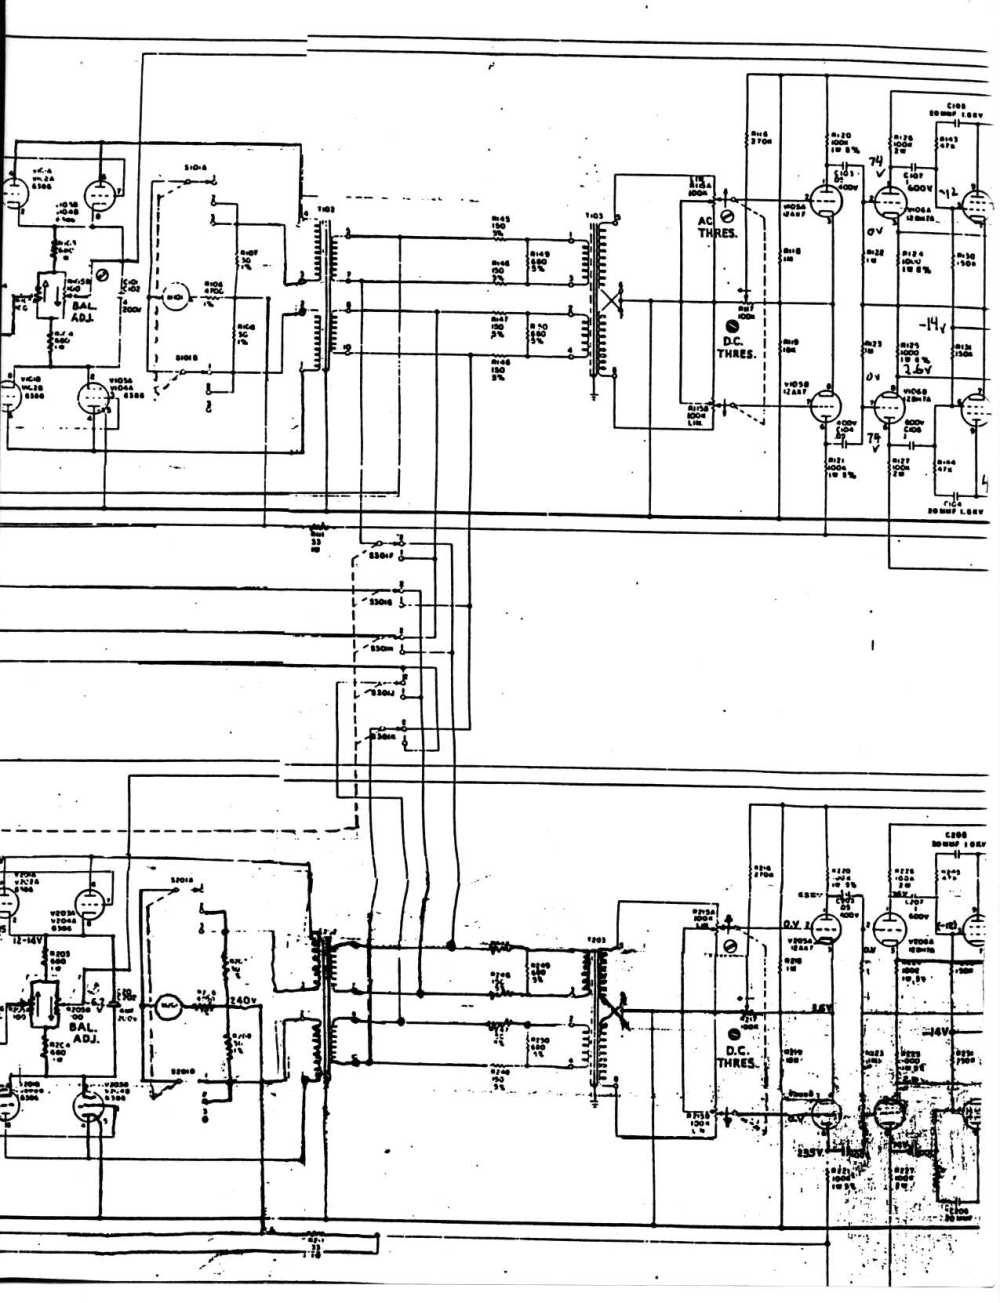 medium resolution of emt 140 stereo driver output amplifier fairchild model 670 stereo limiter compressor schematic page 1